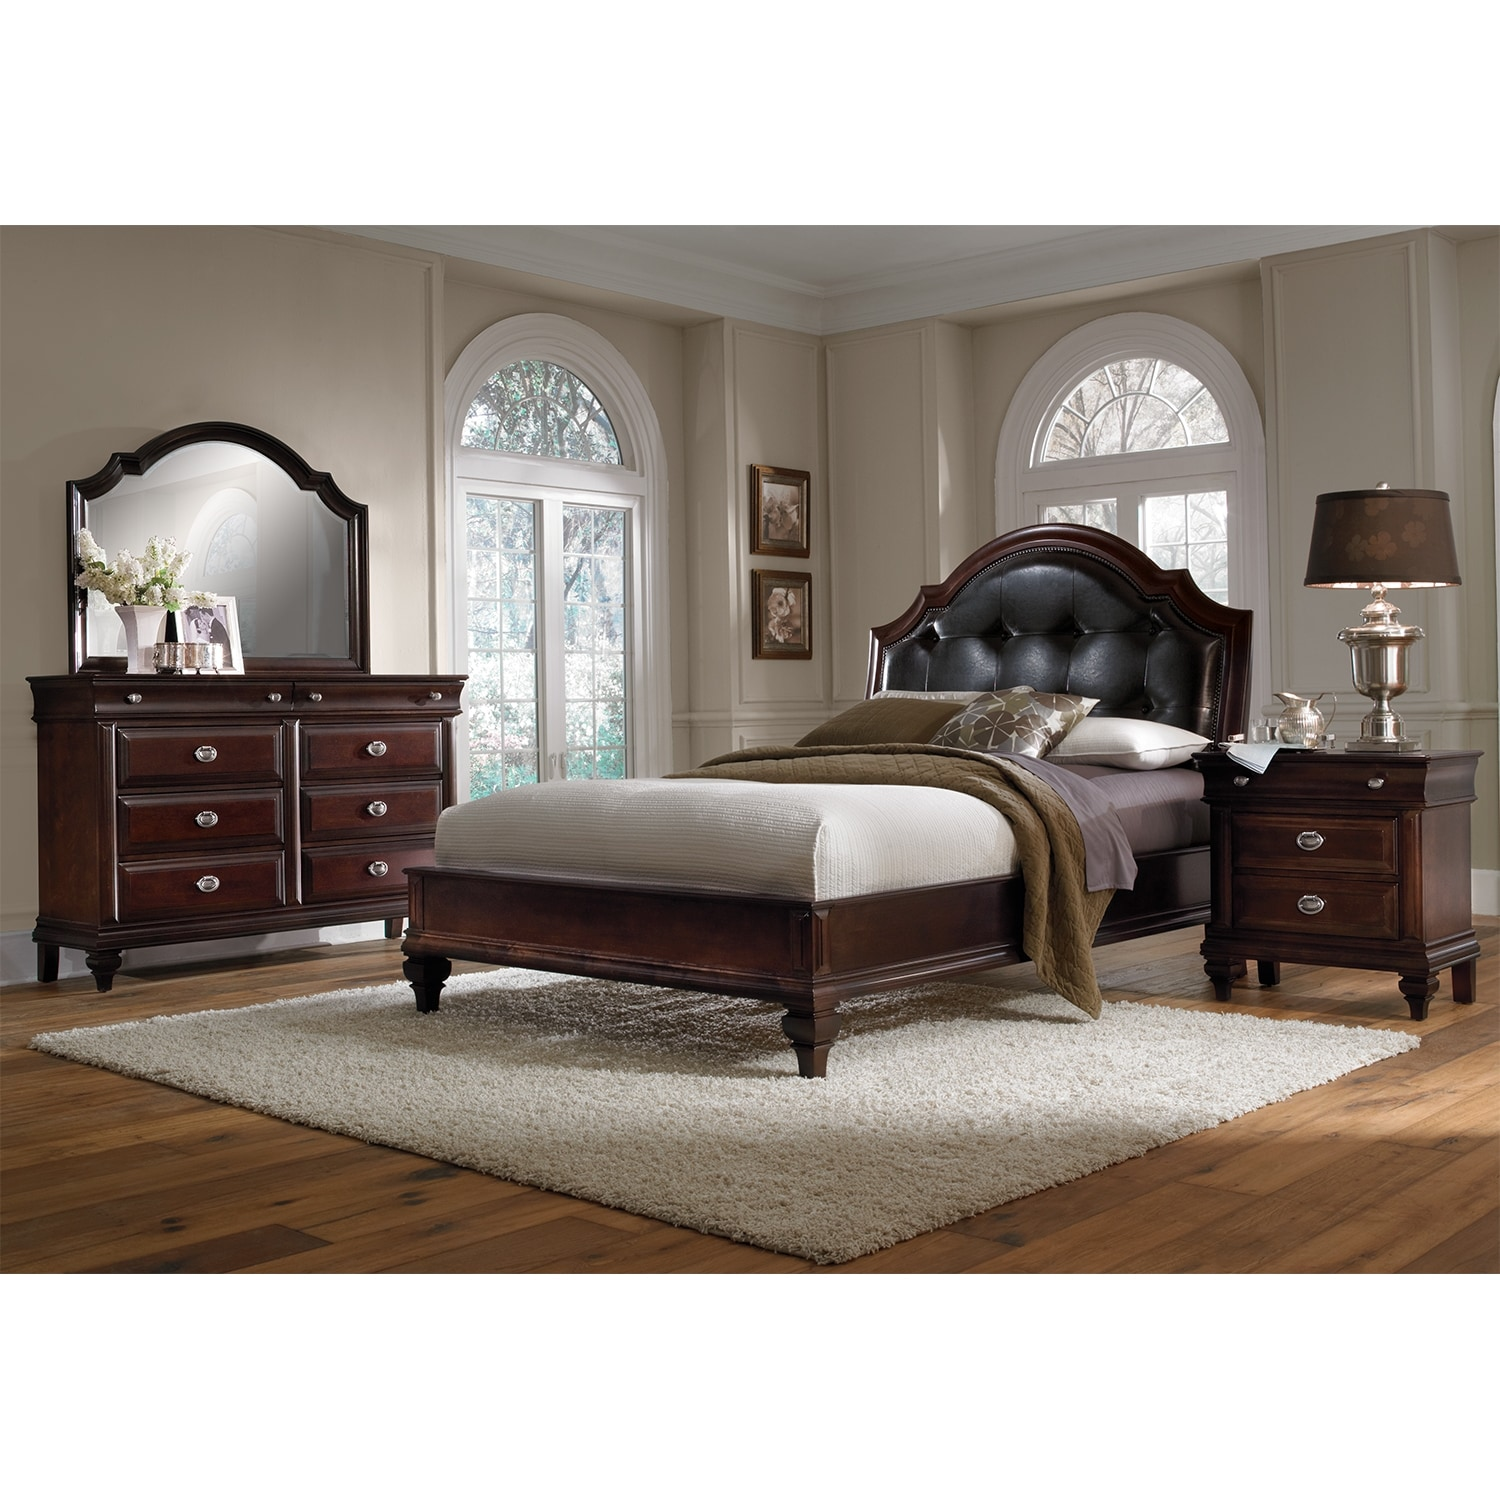 Direct Source Furniture is a direct seller of quality home furnishings based in Salt Lake City,UT. We take great pride in providing stylish, well made furniture at the greatest possible value.